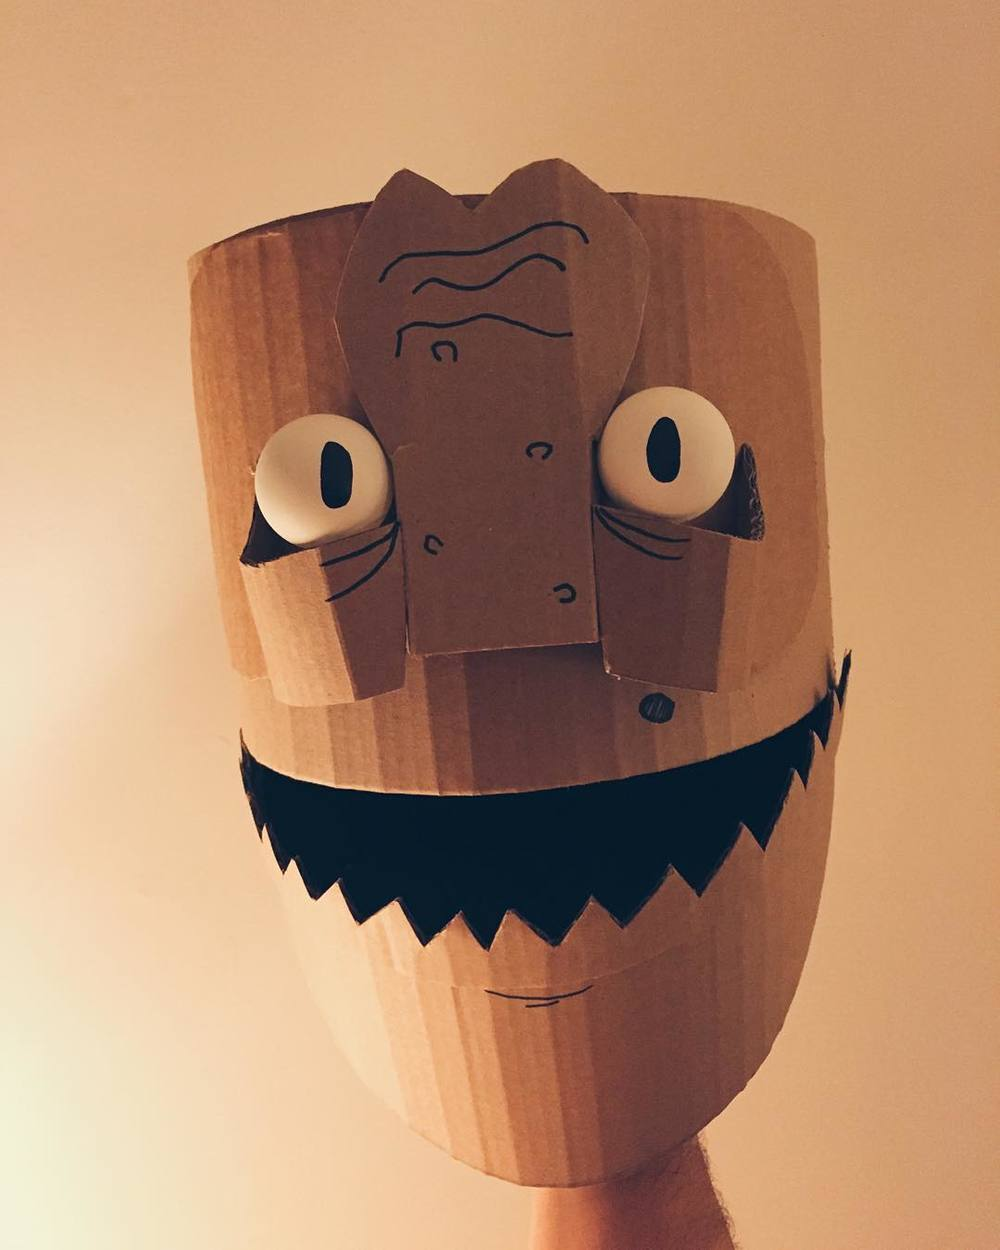 Giant cardboard rod #puppet for the Halloween parade in the works! http://ift.tt/1RAhg7R